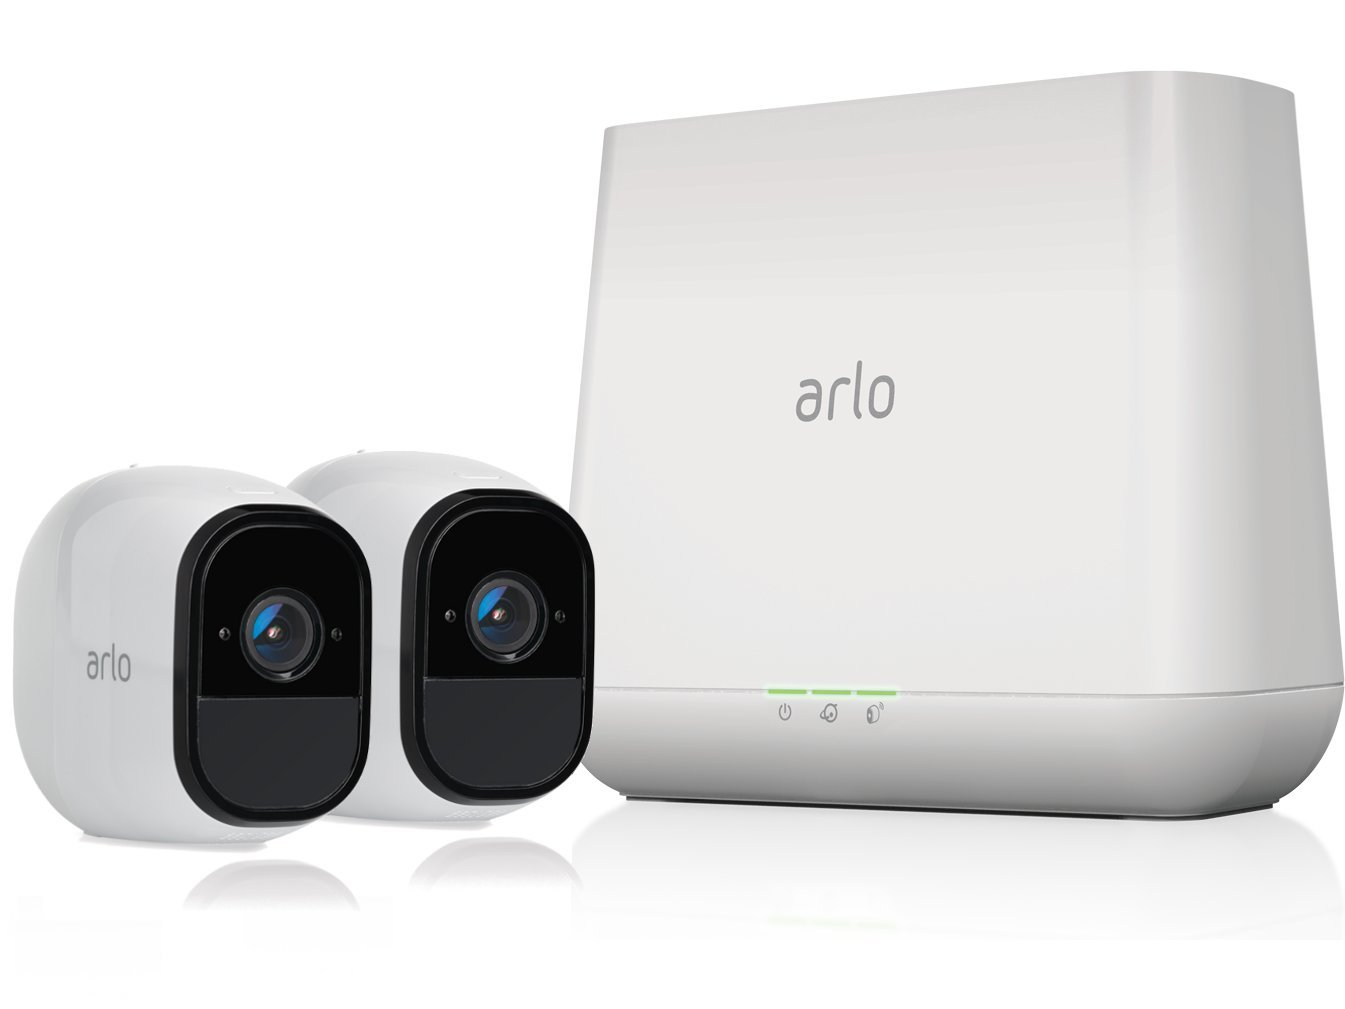 (Renewed) Arlo Pro Wireless Home Security Camera System | Rechargeable, Night vision, Indoor/Outdoor | 2 camera kit (VMS4230-100NAR)